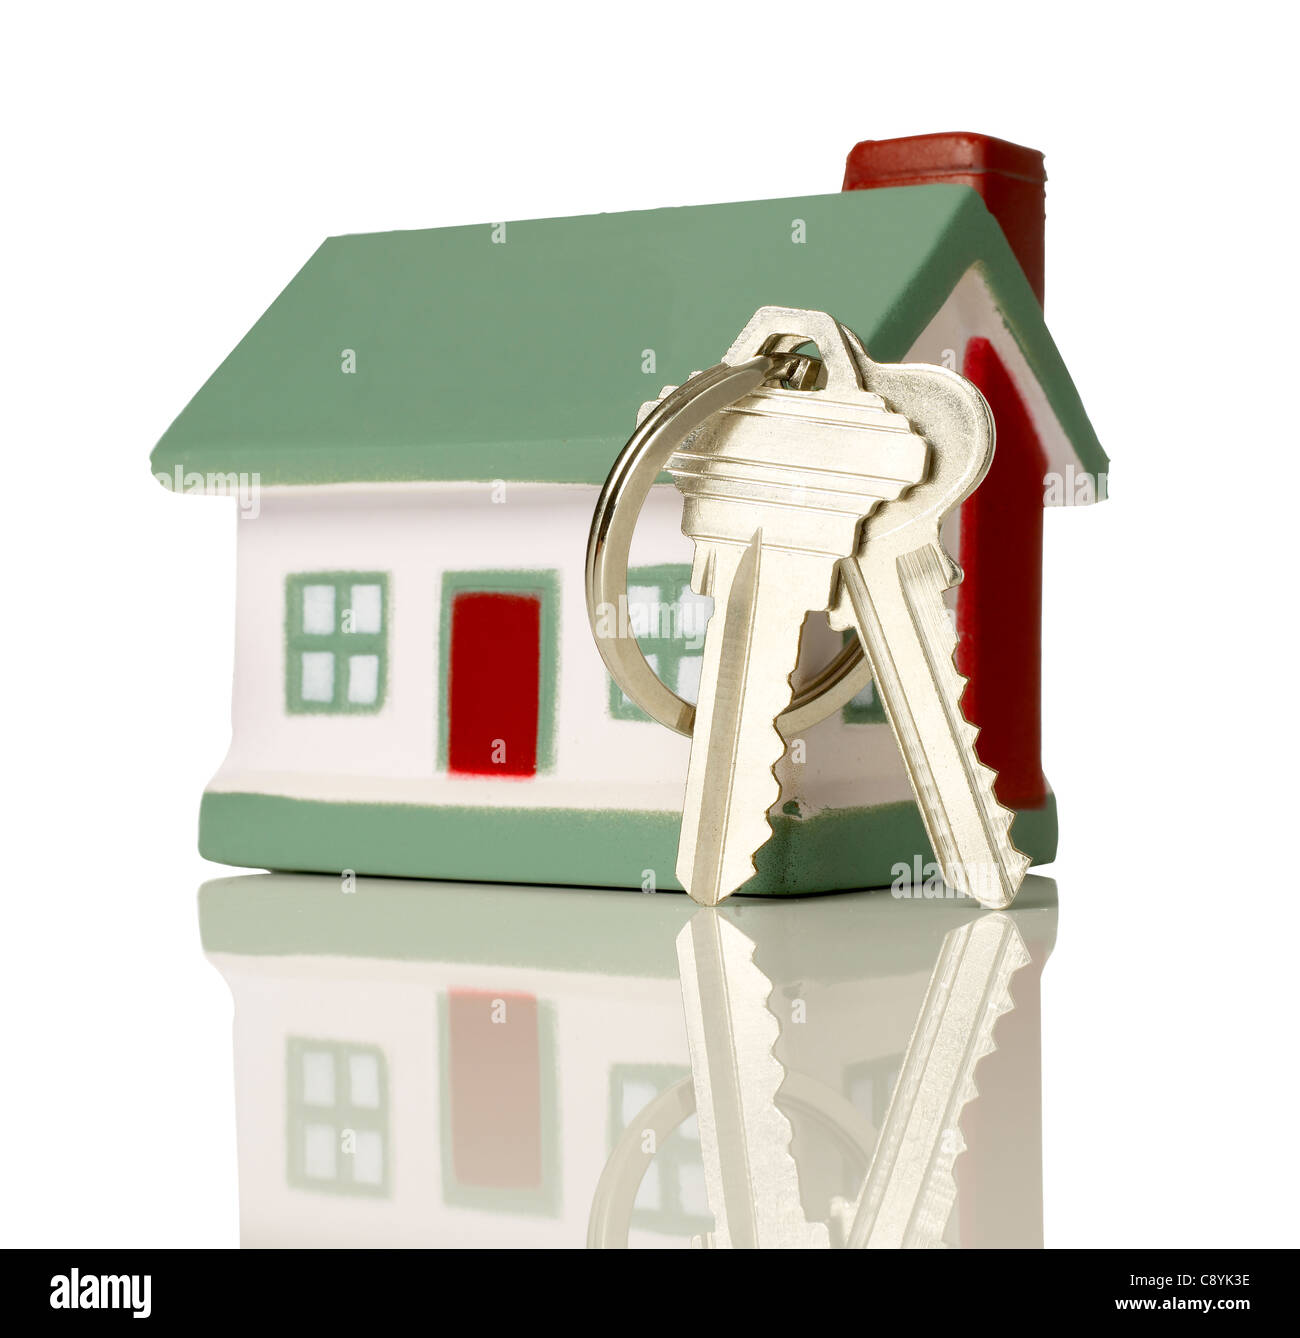 Model house with keys - Stock Image